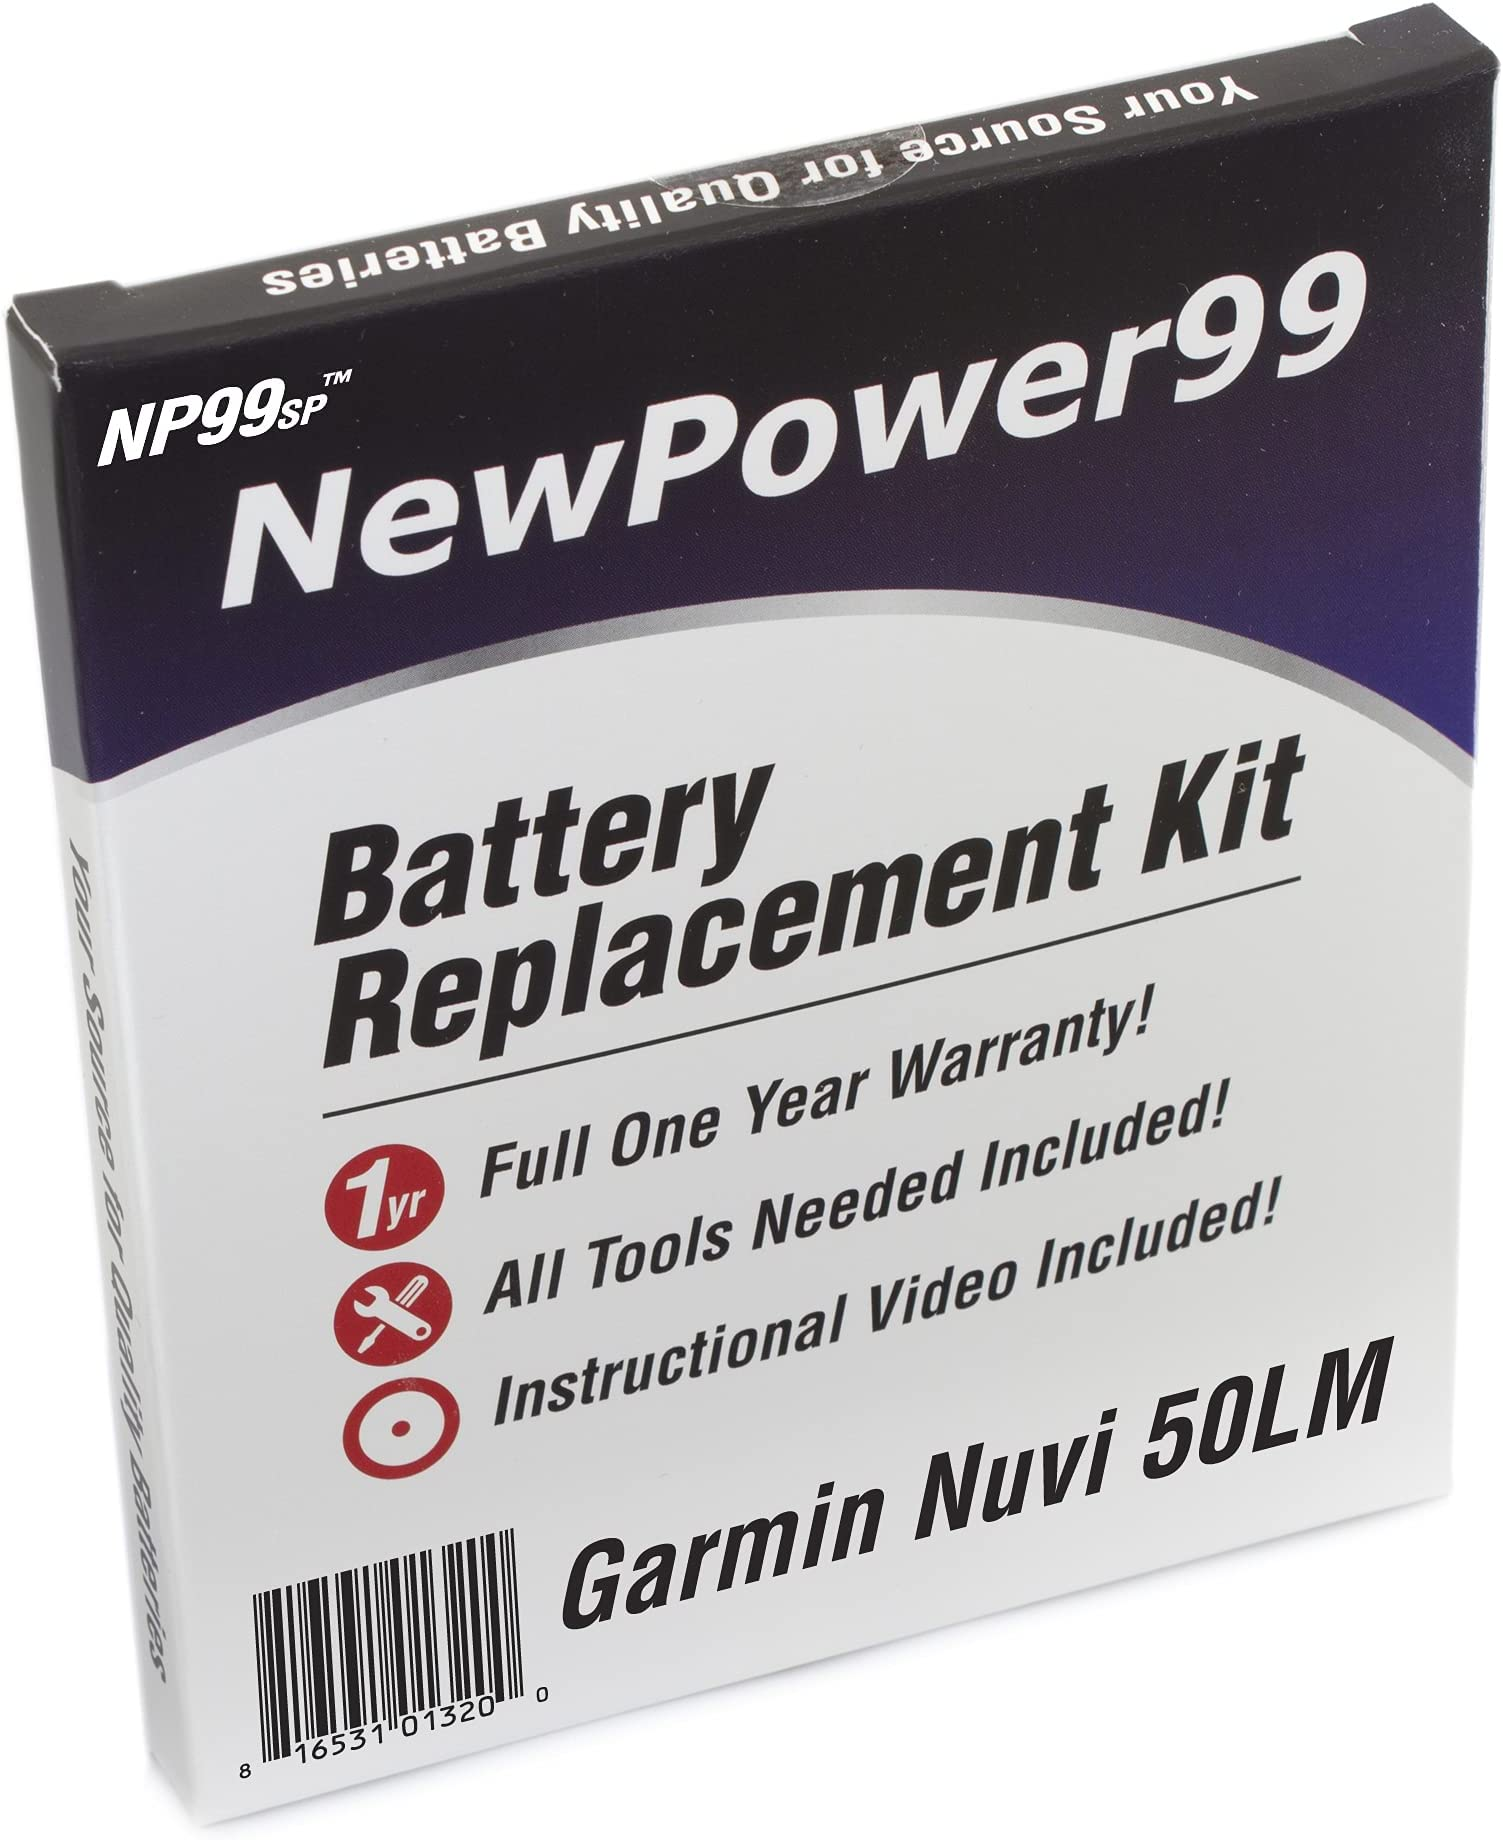 Video Instructions and Extended Life Battery from NewPower99 Battery Kit for Garmin Nuvi 50LM with Tools